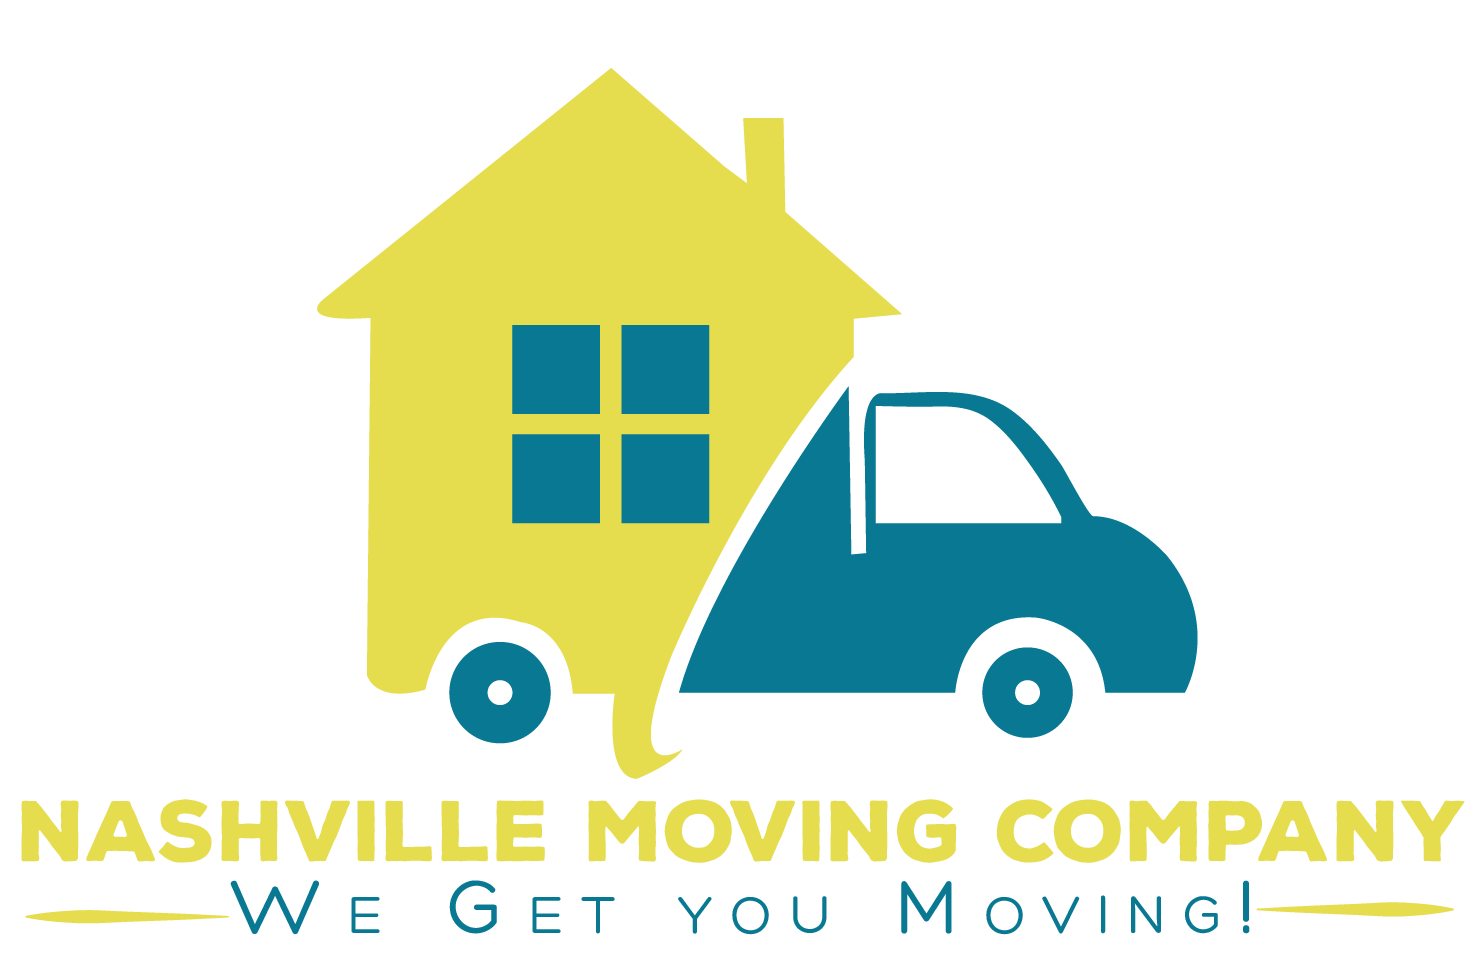 Nashville Moving Company